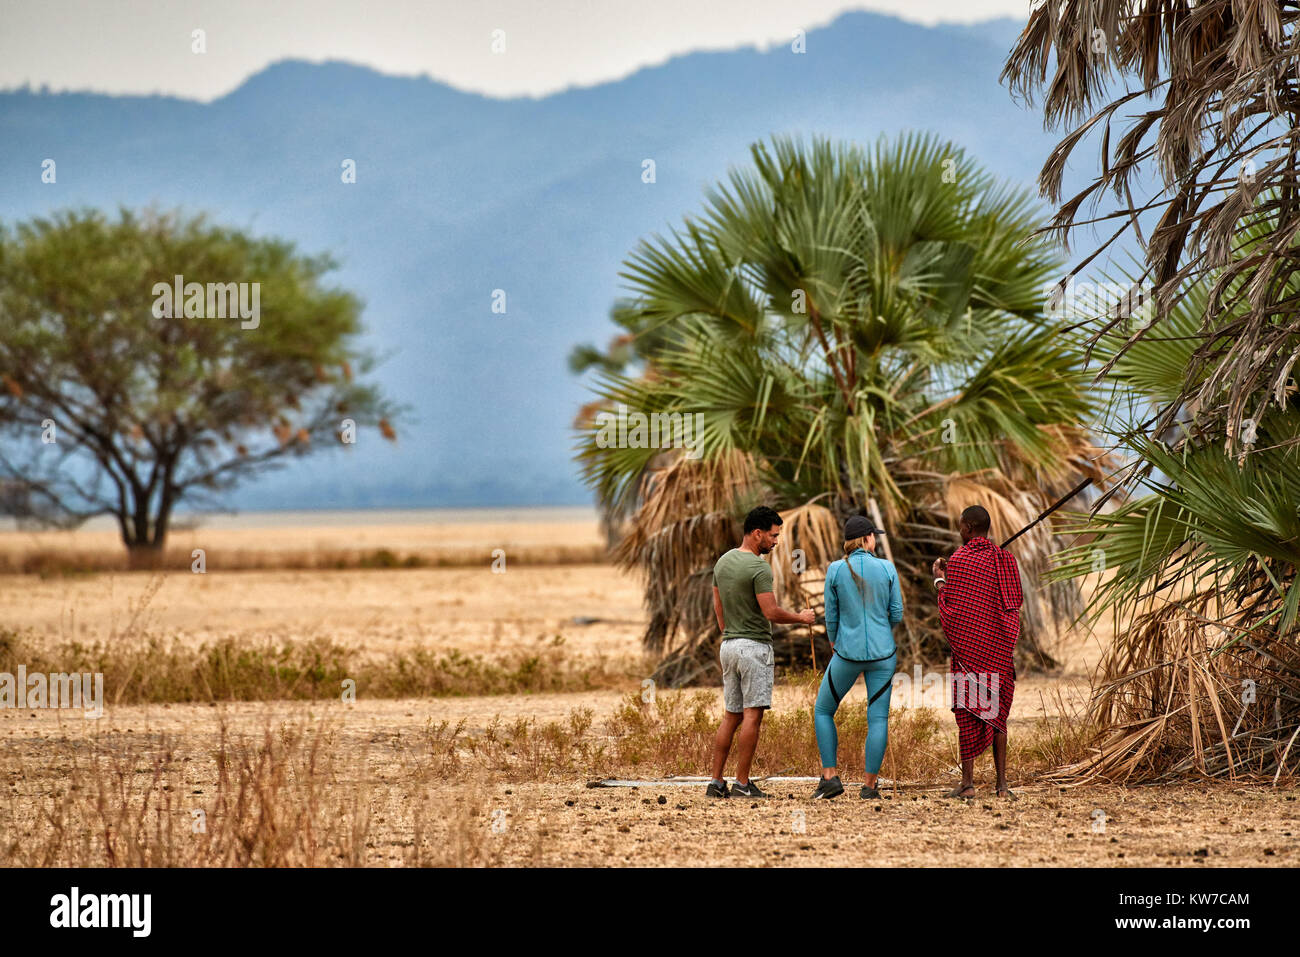 walking safari with Masai, Lake Manyara National Park, Tanzania, Africa - Stock Image